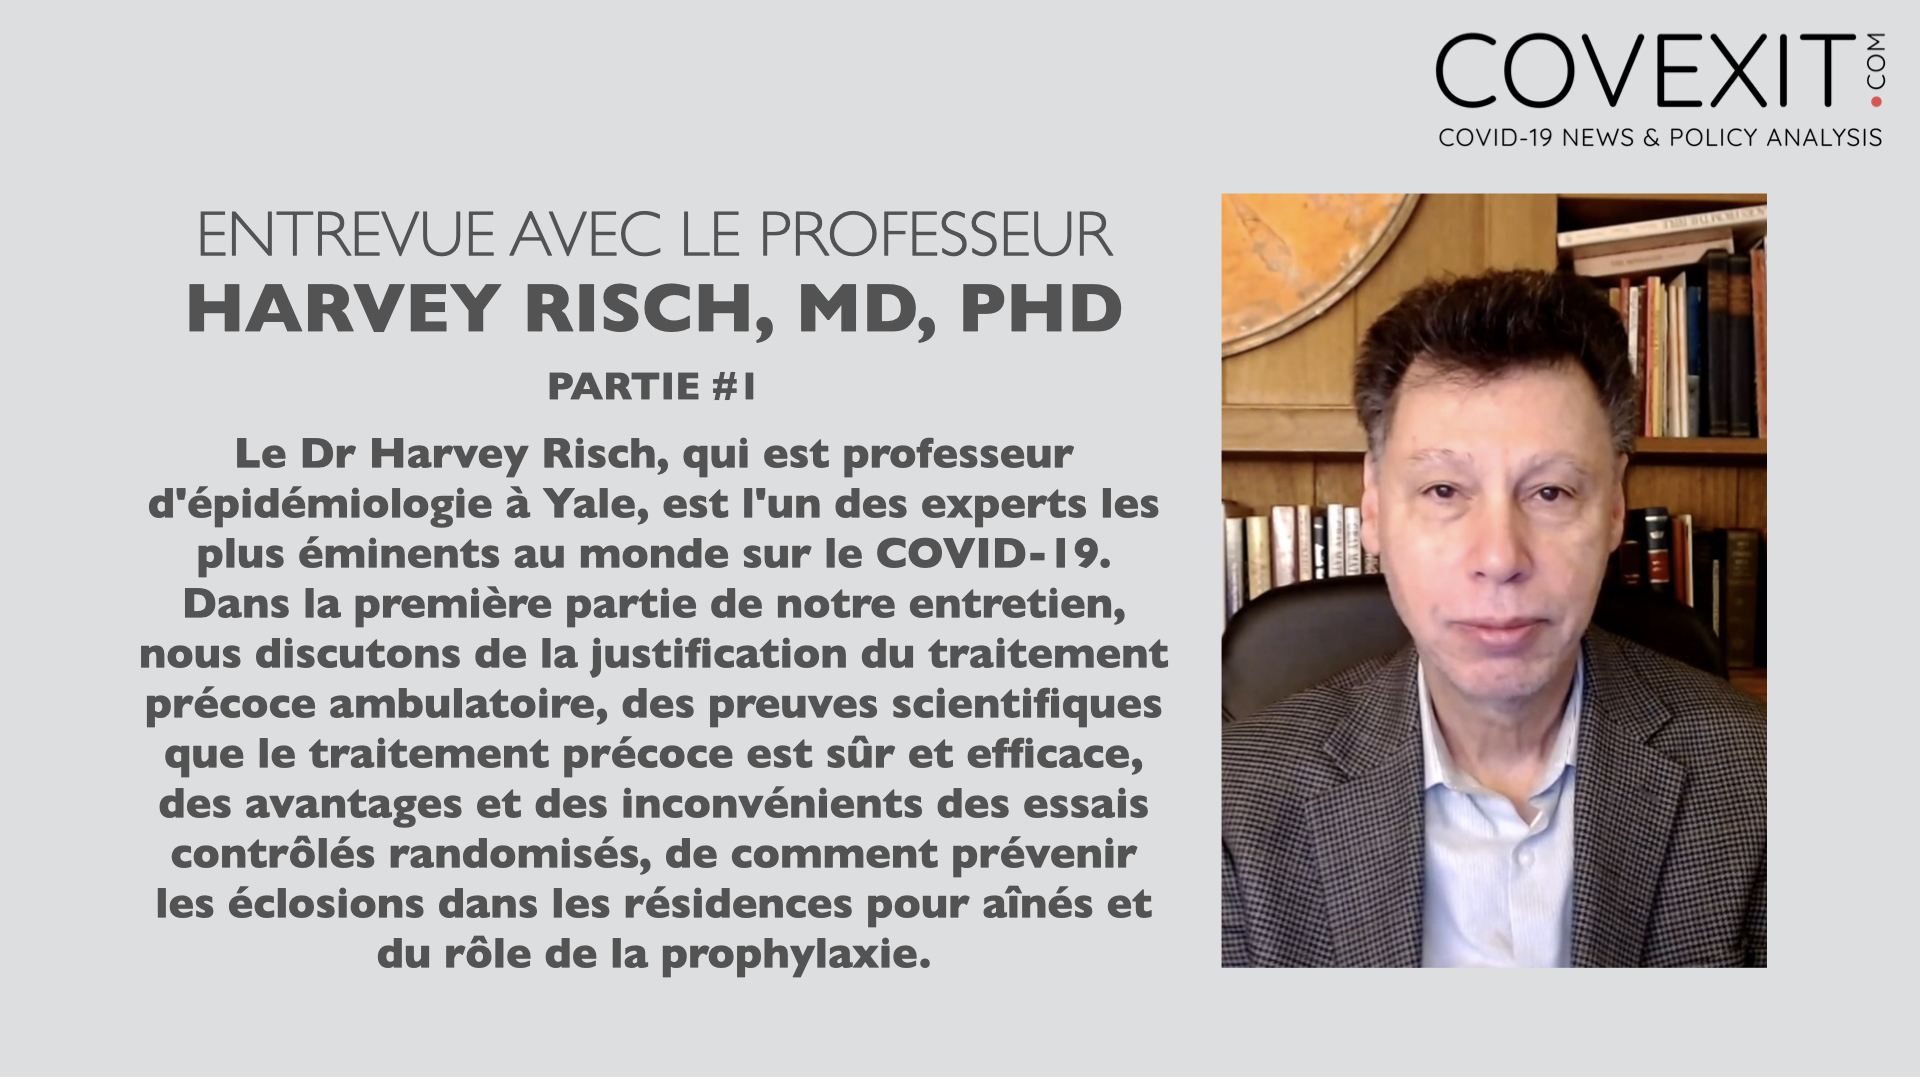 Entrevue avec le Professeur Harvey Risch, MD, PhD